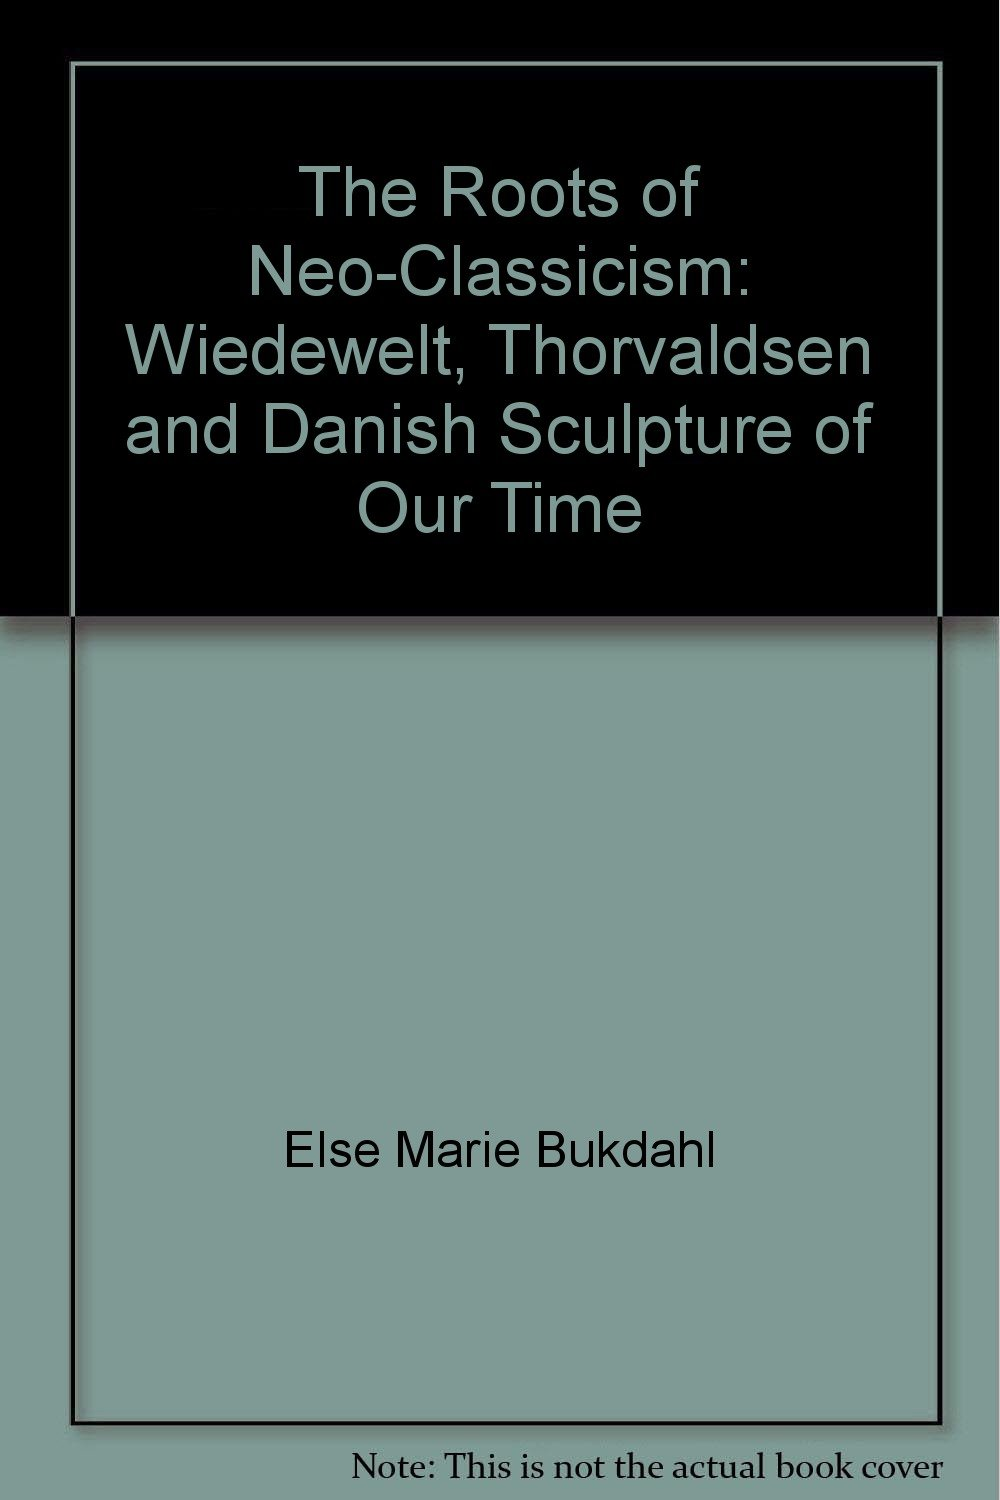 Download The Roots of Neo-Classicism: Wiedewelt, Thorvaldsen and Danish Sculpture of Our Time ebook